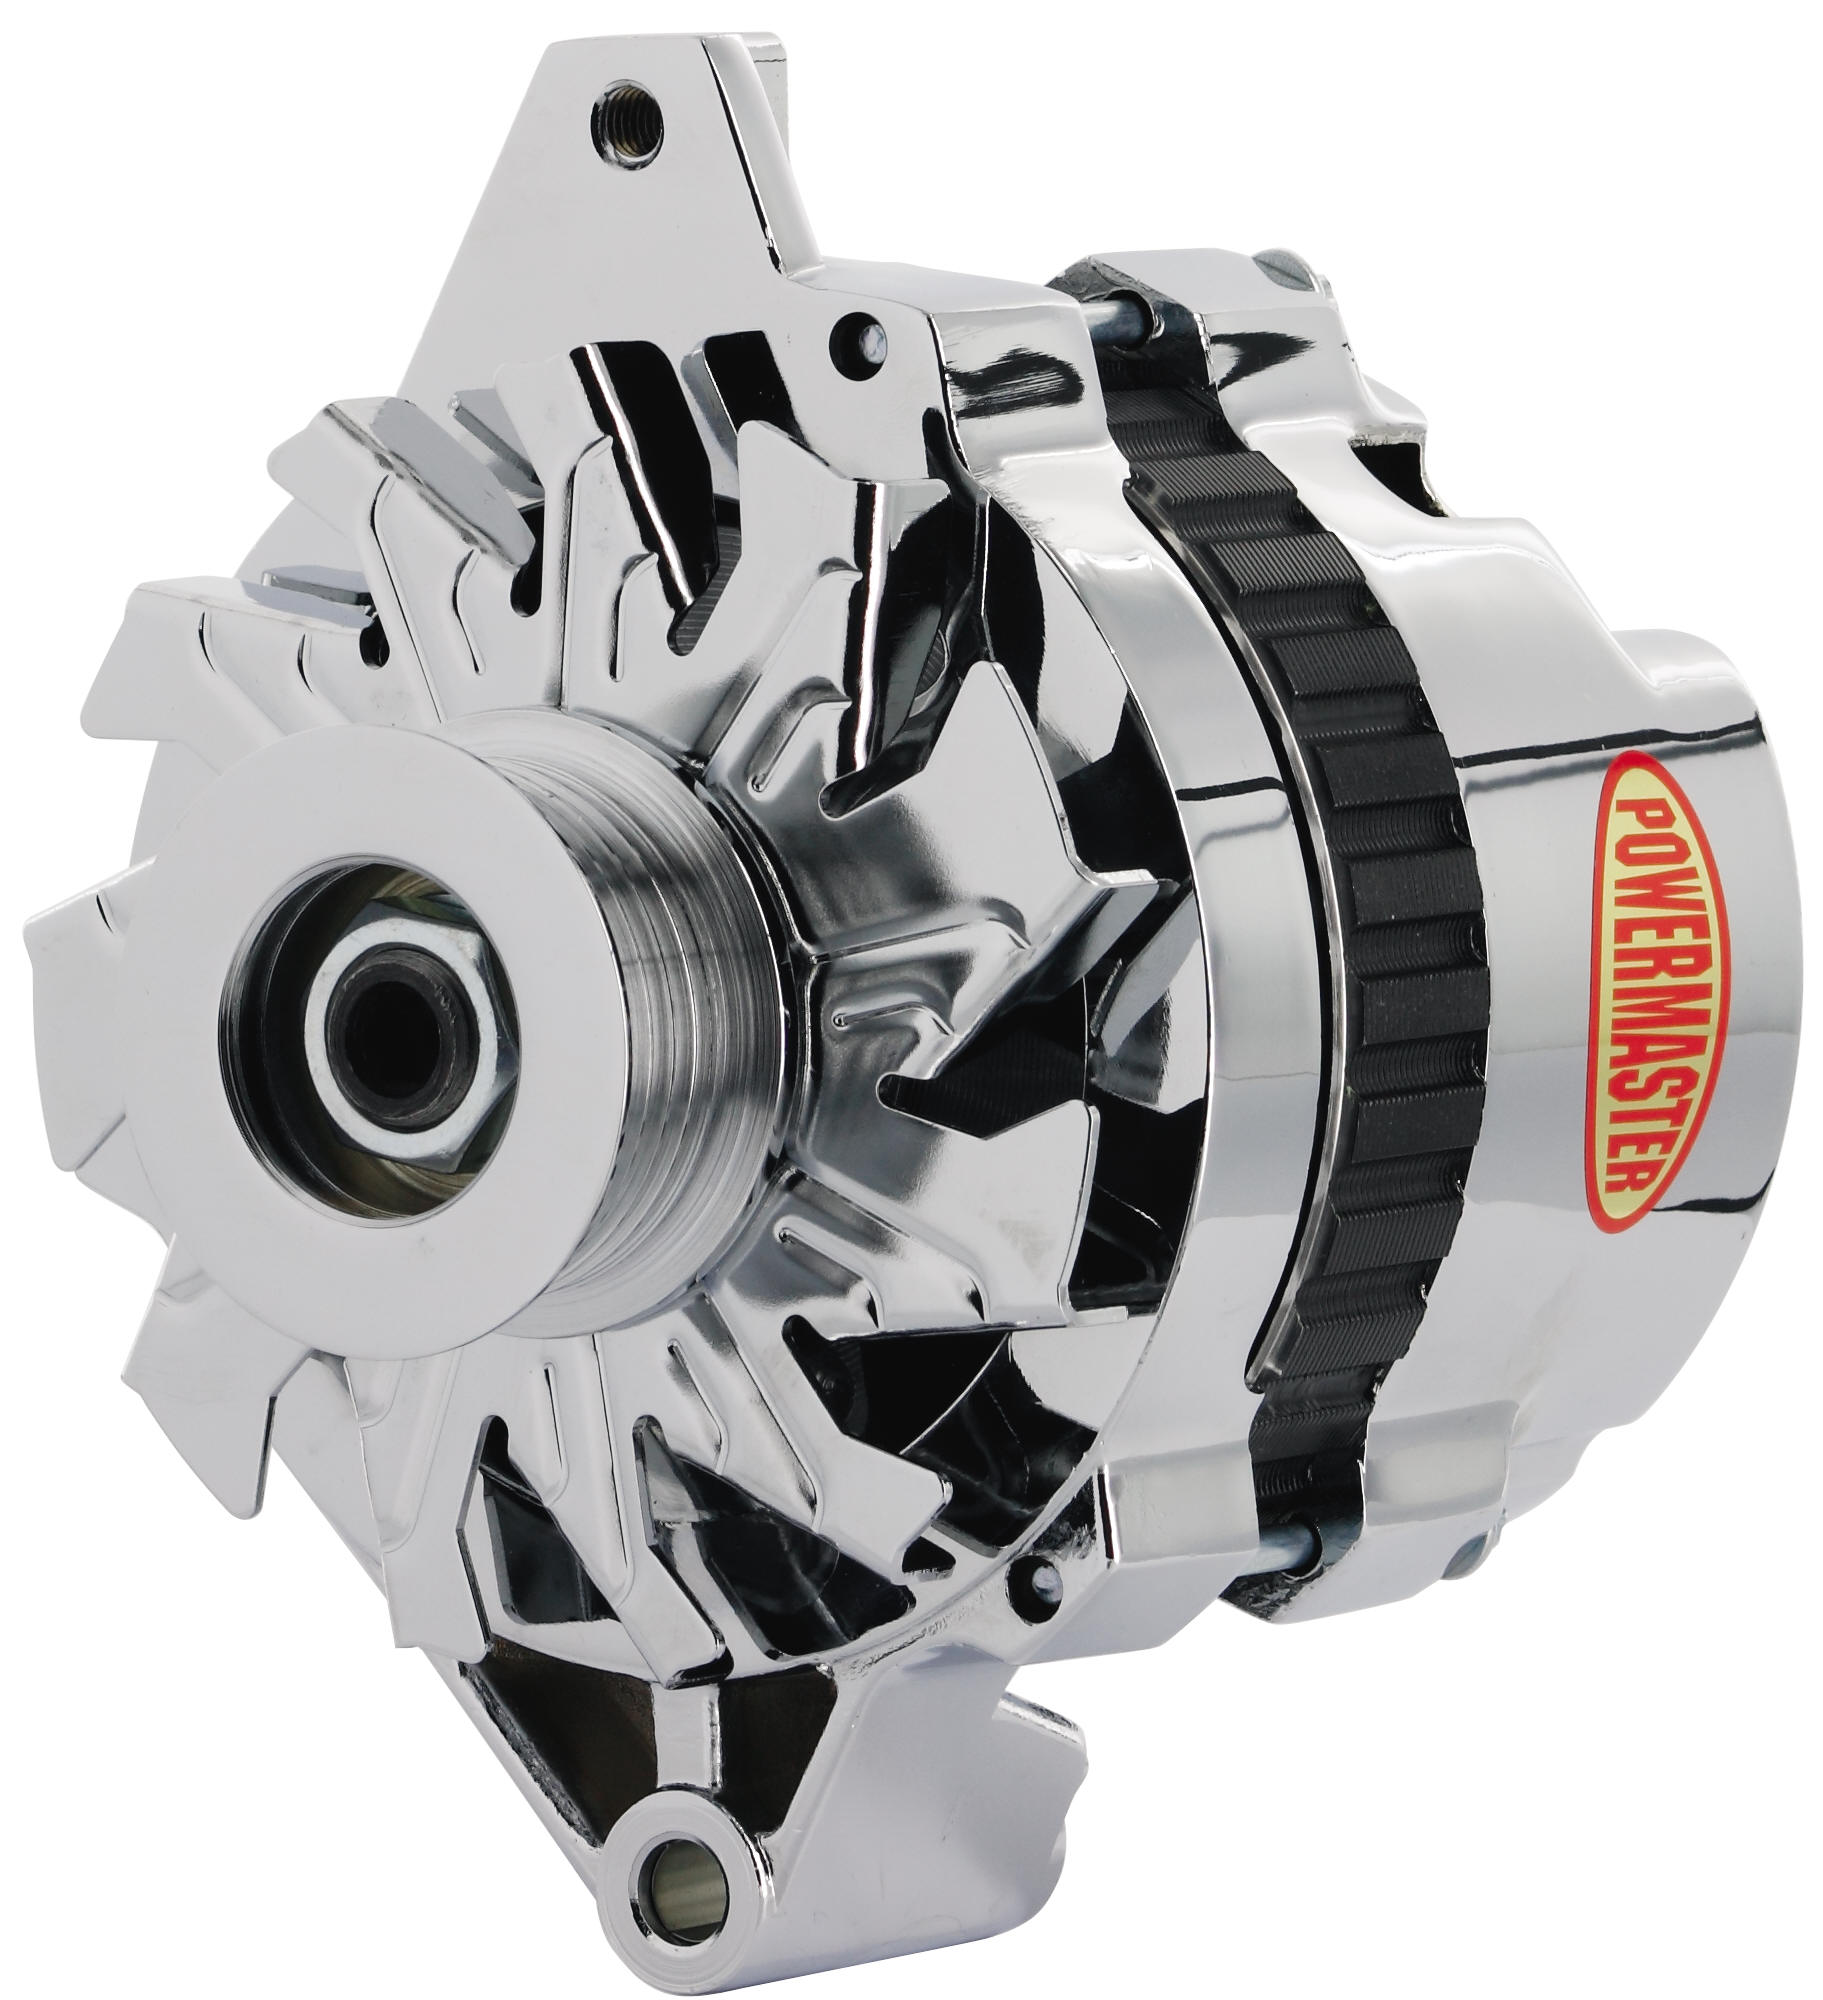 powermaster 17802 alternator generator gm cs130 style 6 groove serpentine pulley 105 amp straight mount one wire oe chrome walmart canada [ 2000 x 2000 Pixel ]